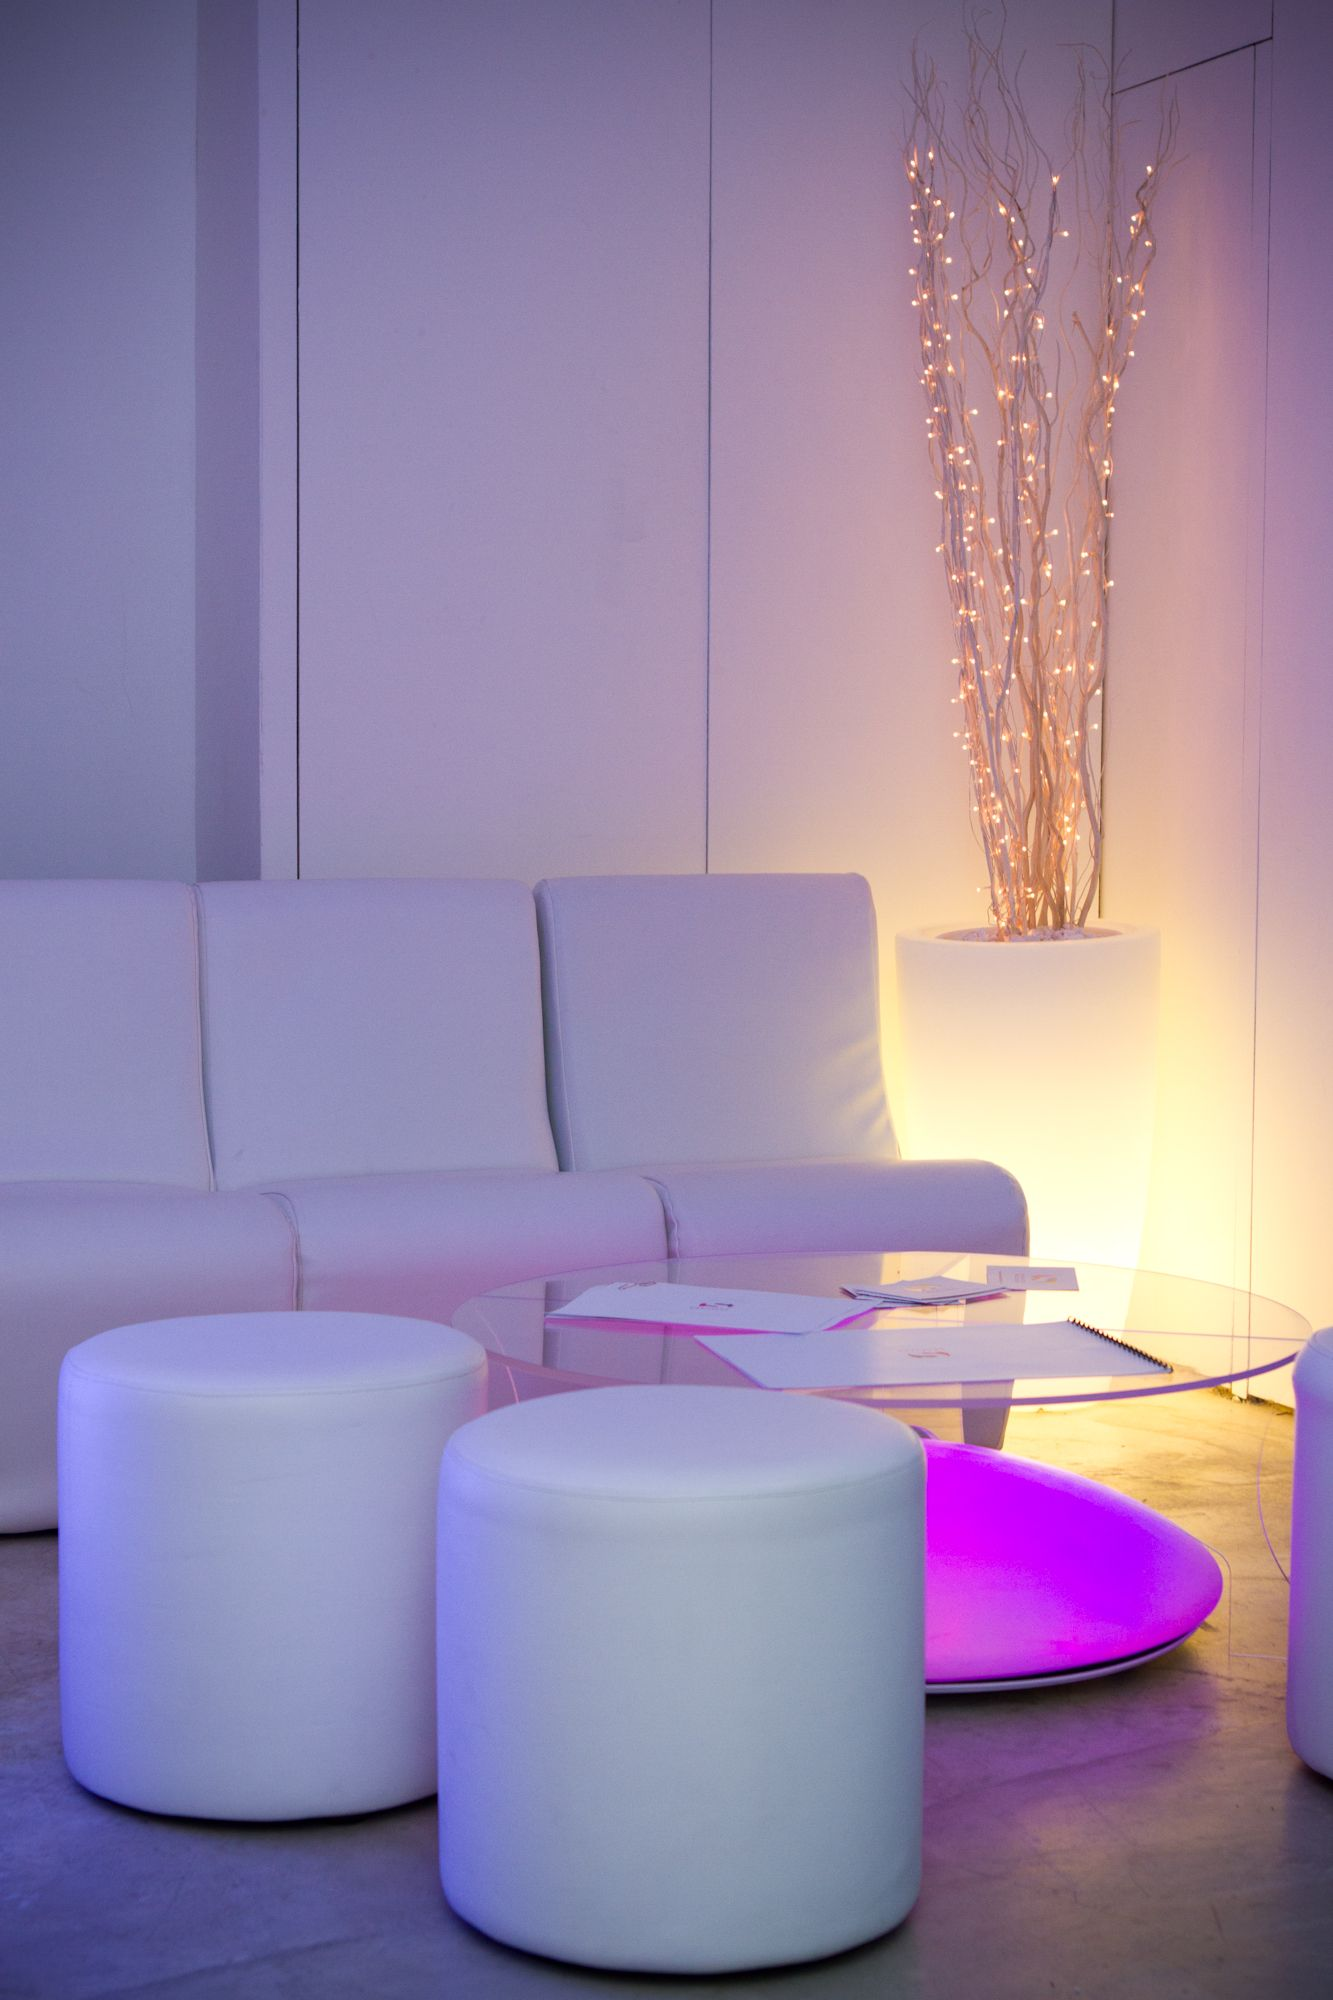 Comfy seating downstairs at the ICETANK launch party